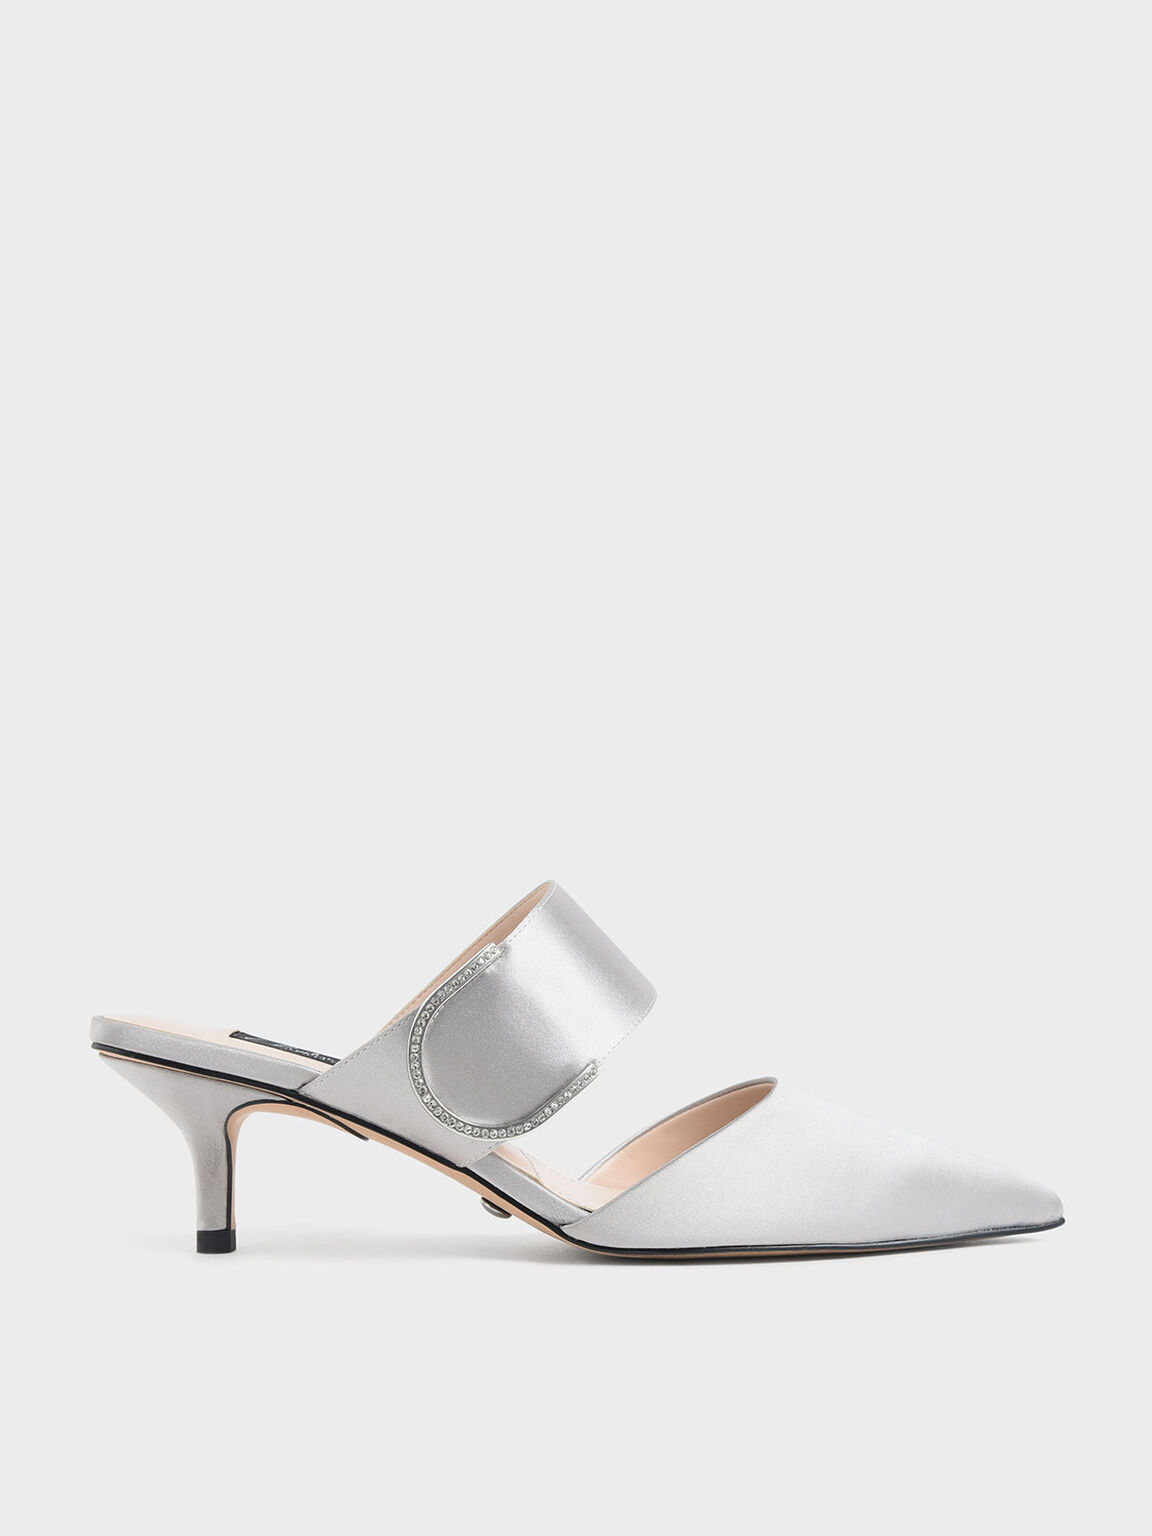 Satin Gem Encrusted Mules, Silver, hi-res